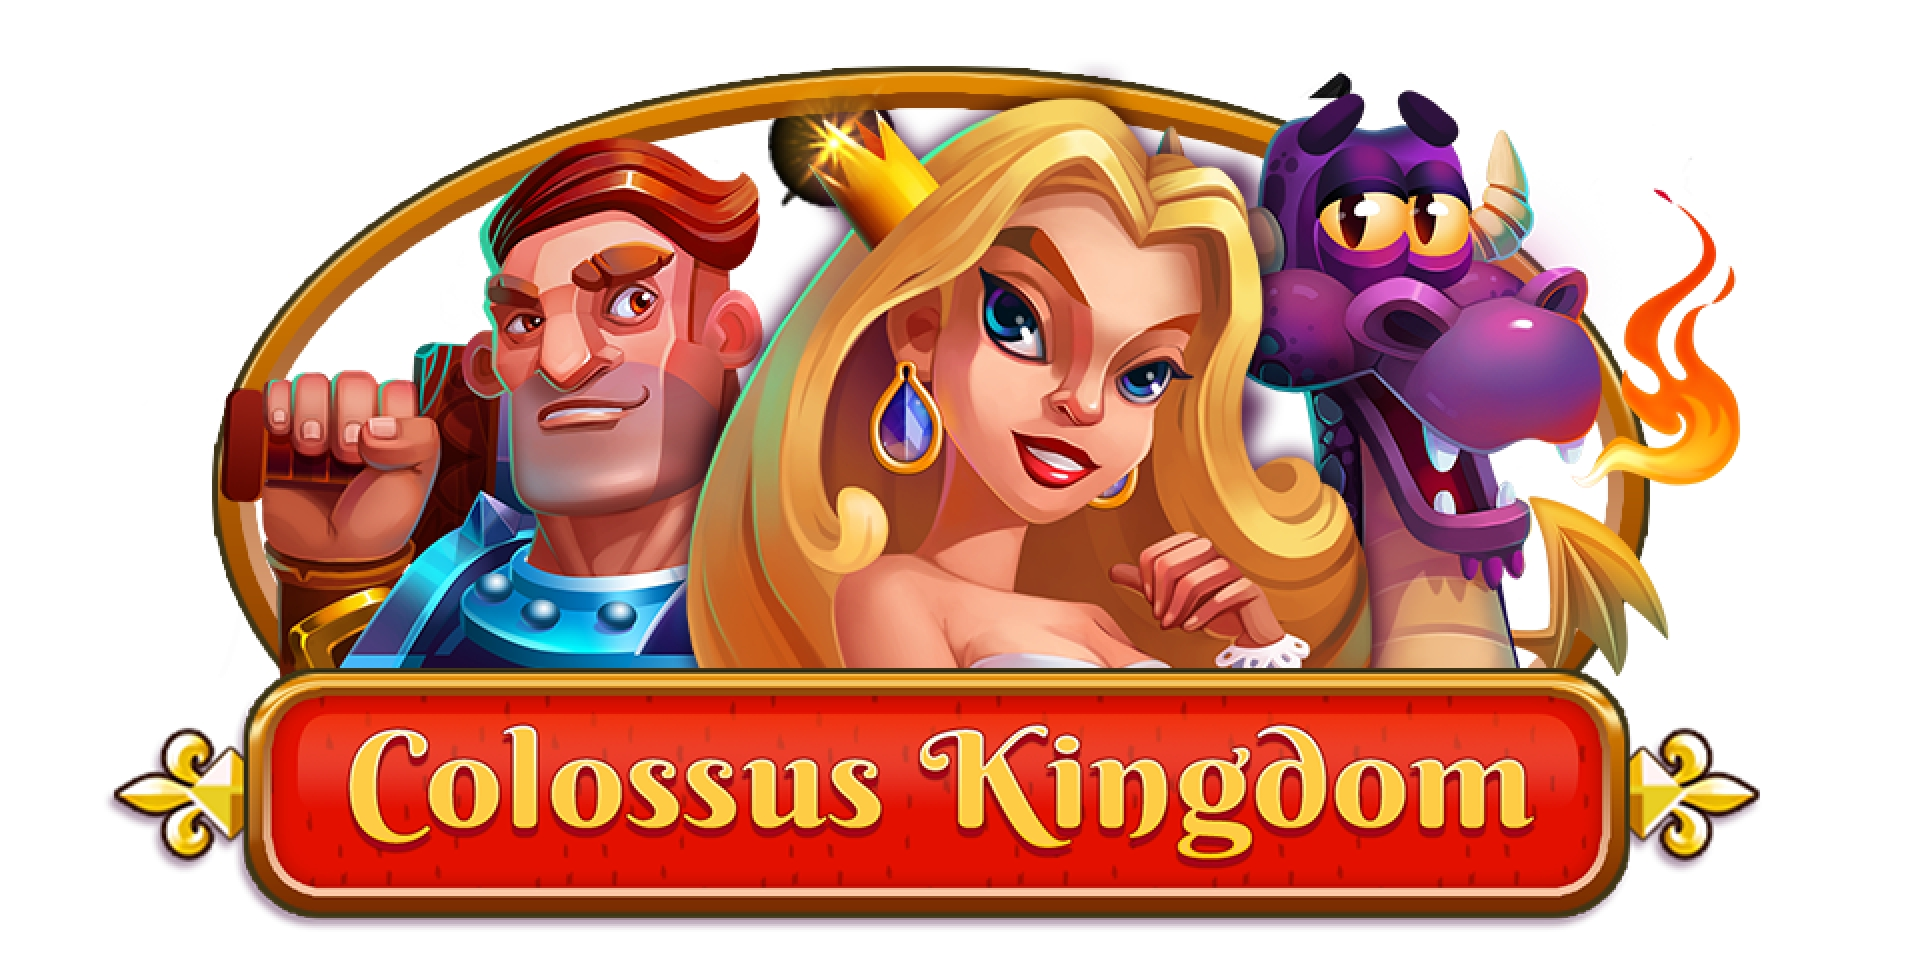 The Colossus Kingdom Online Slot Demo Game by Spinomenal